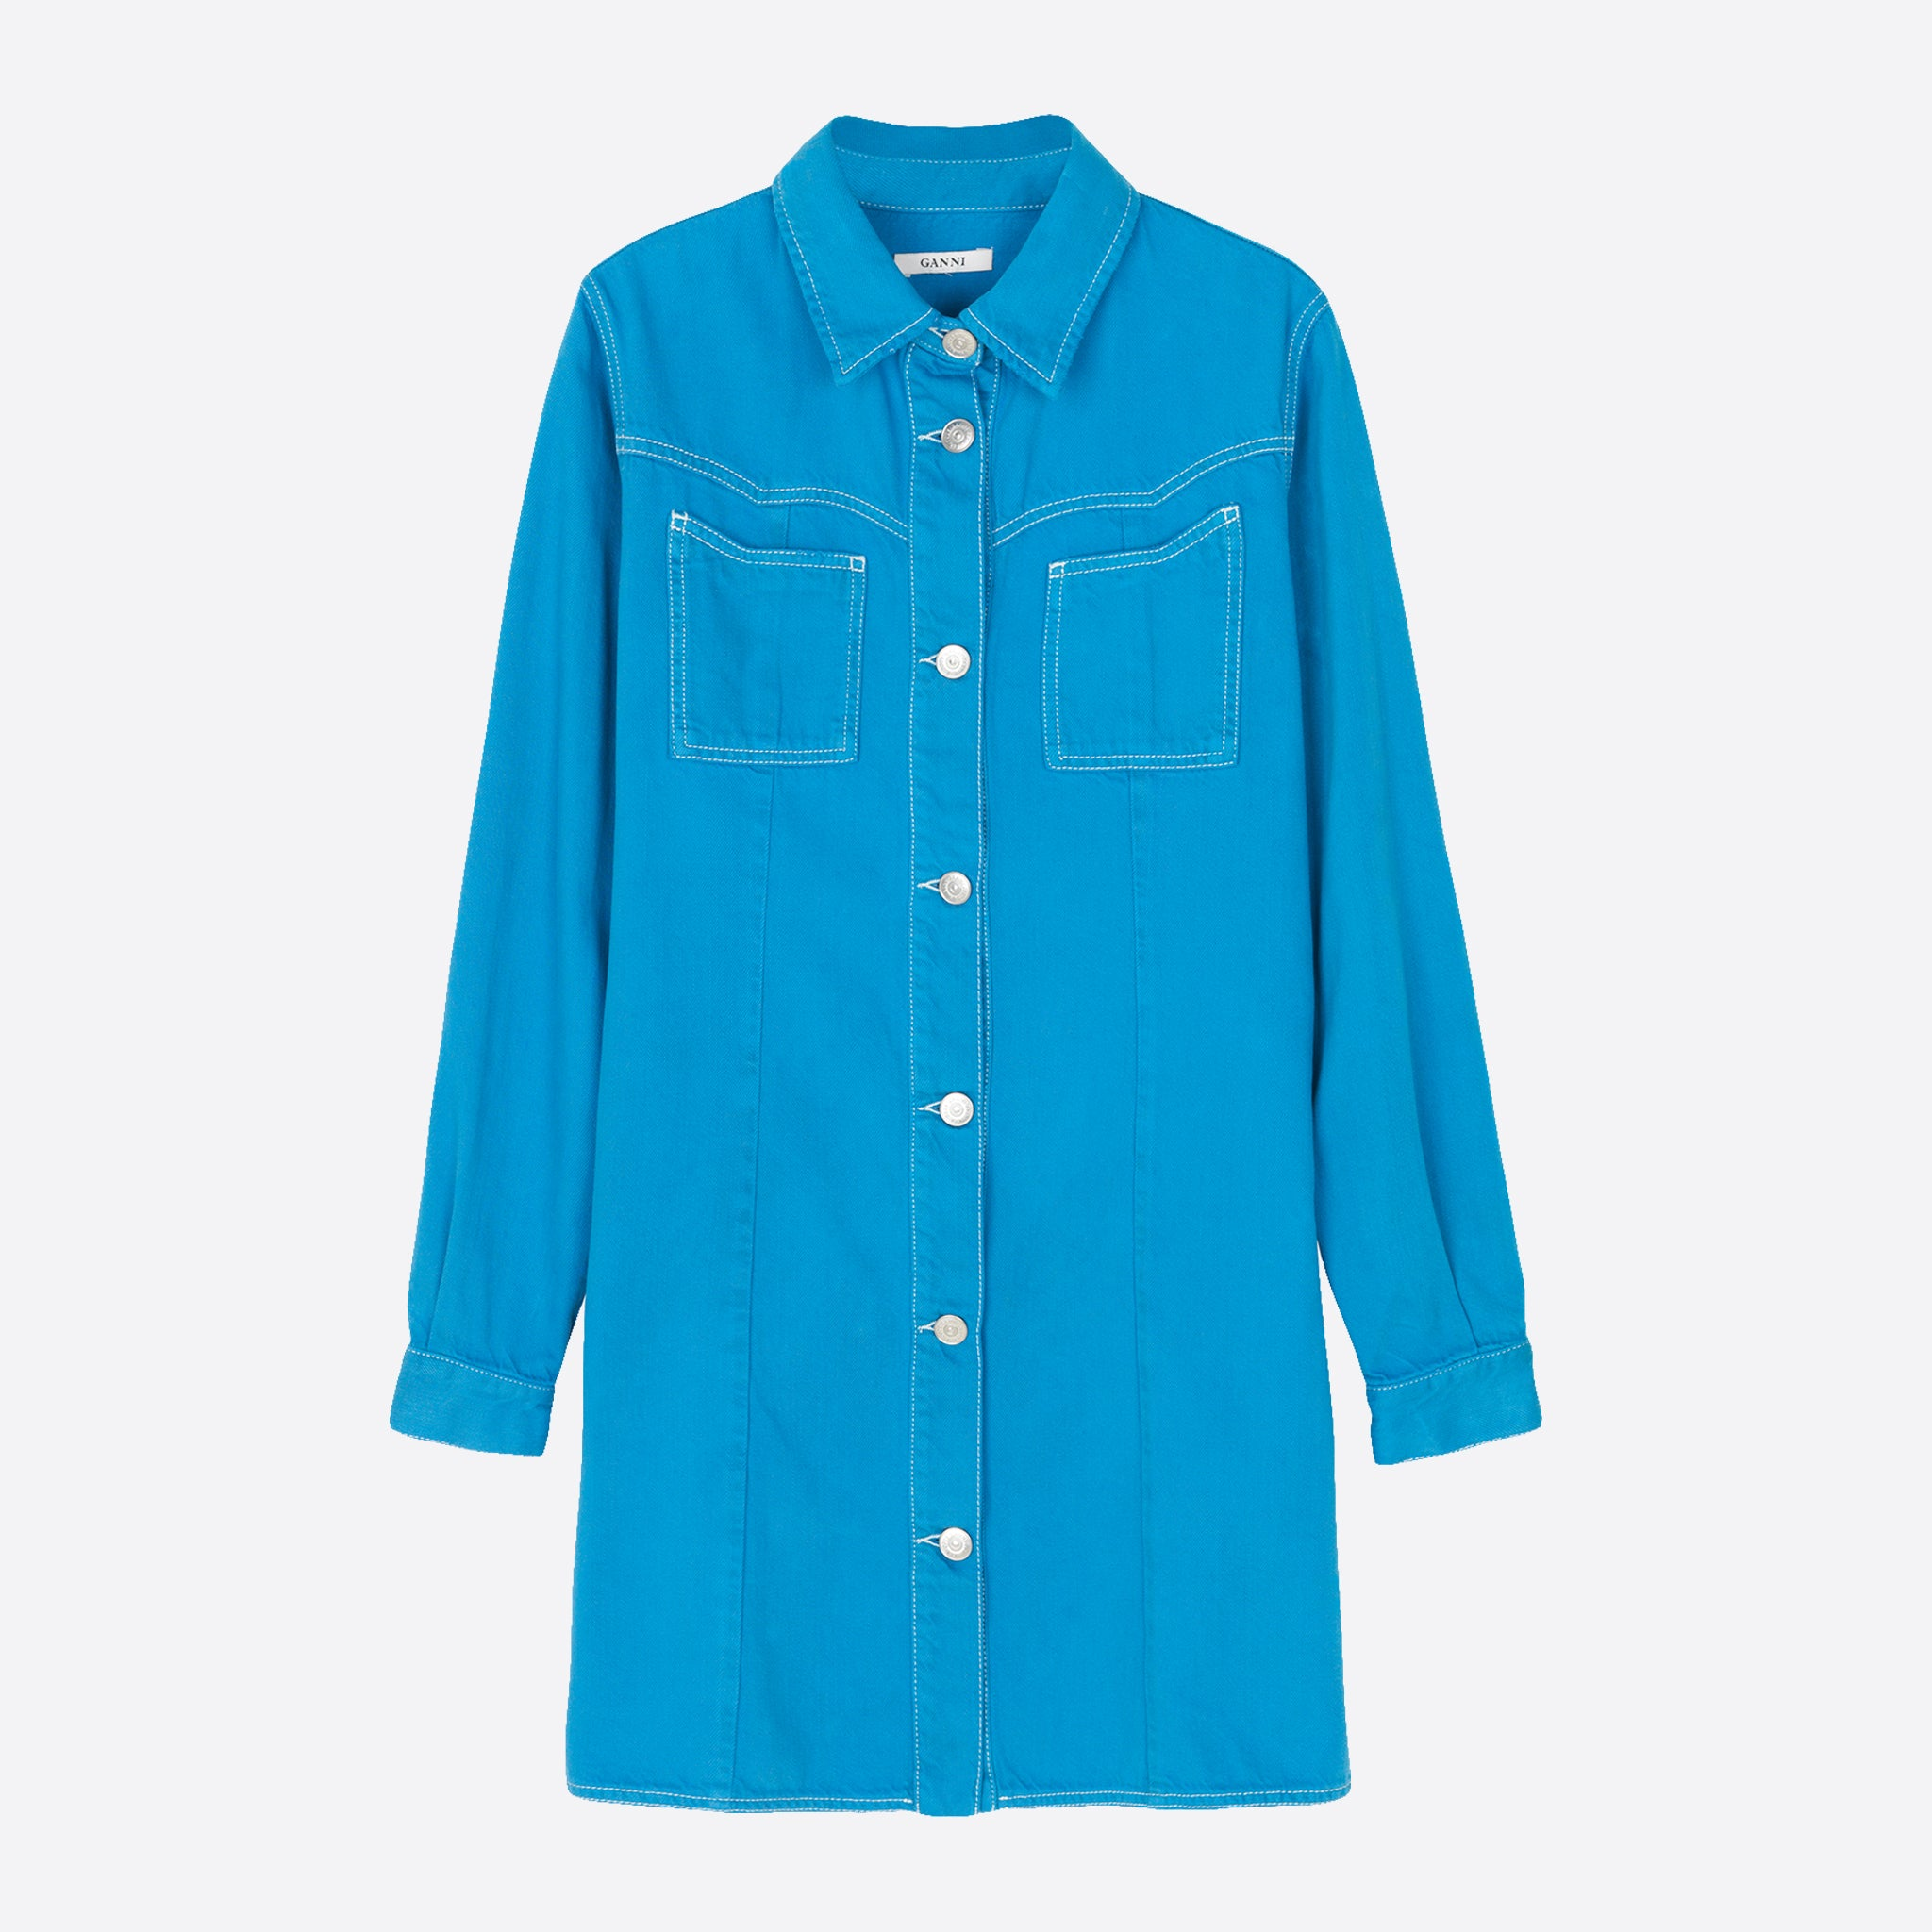 Ganni Kress Shirt Dress in Over-dyed Lapis Blue